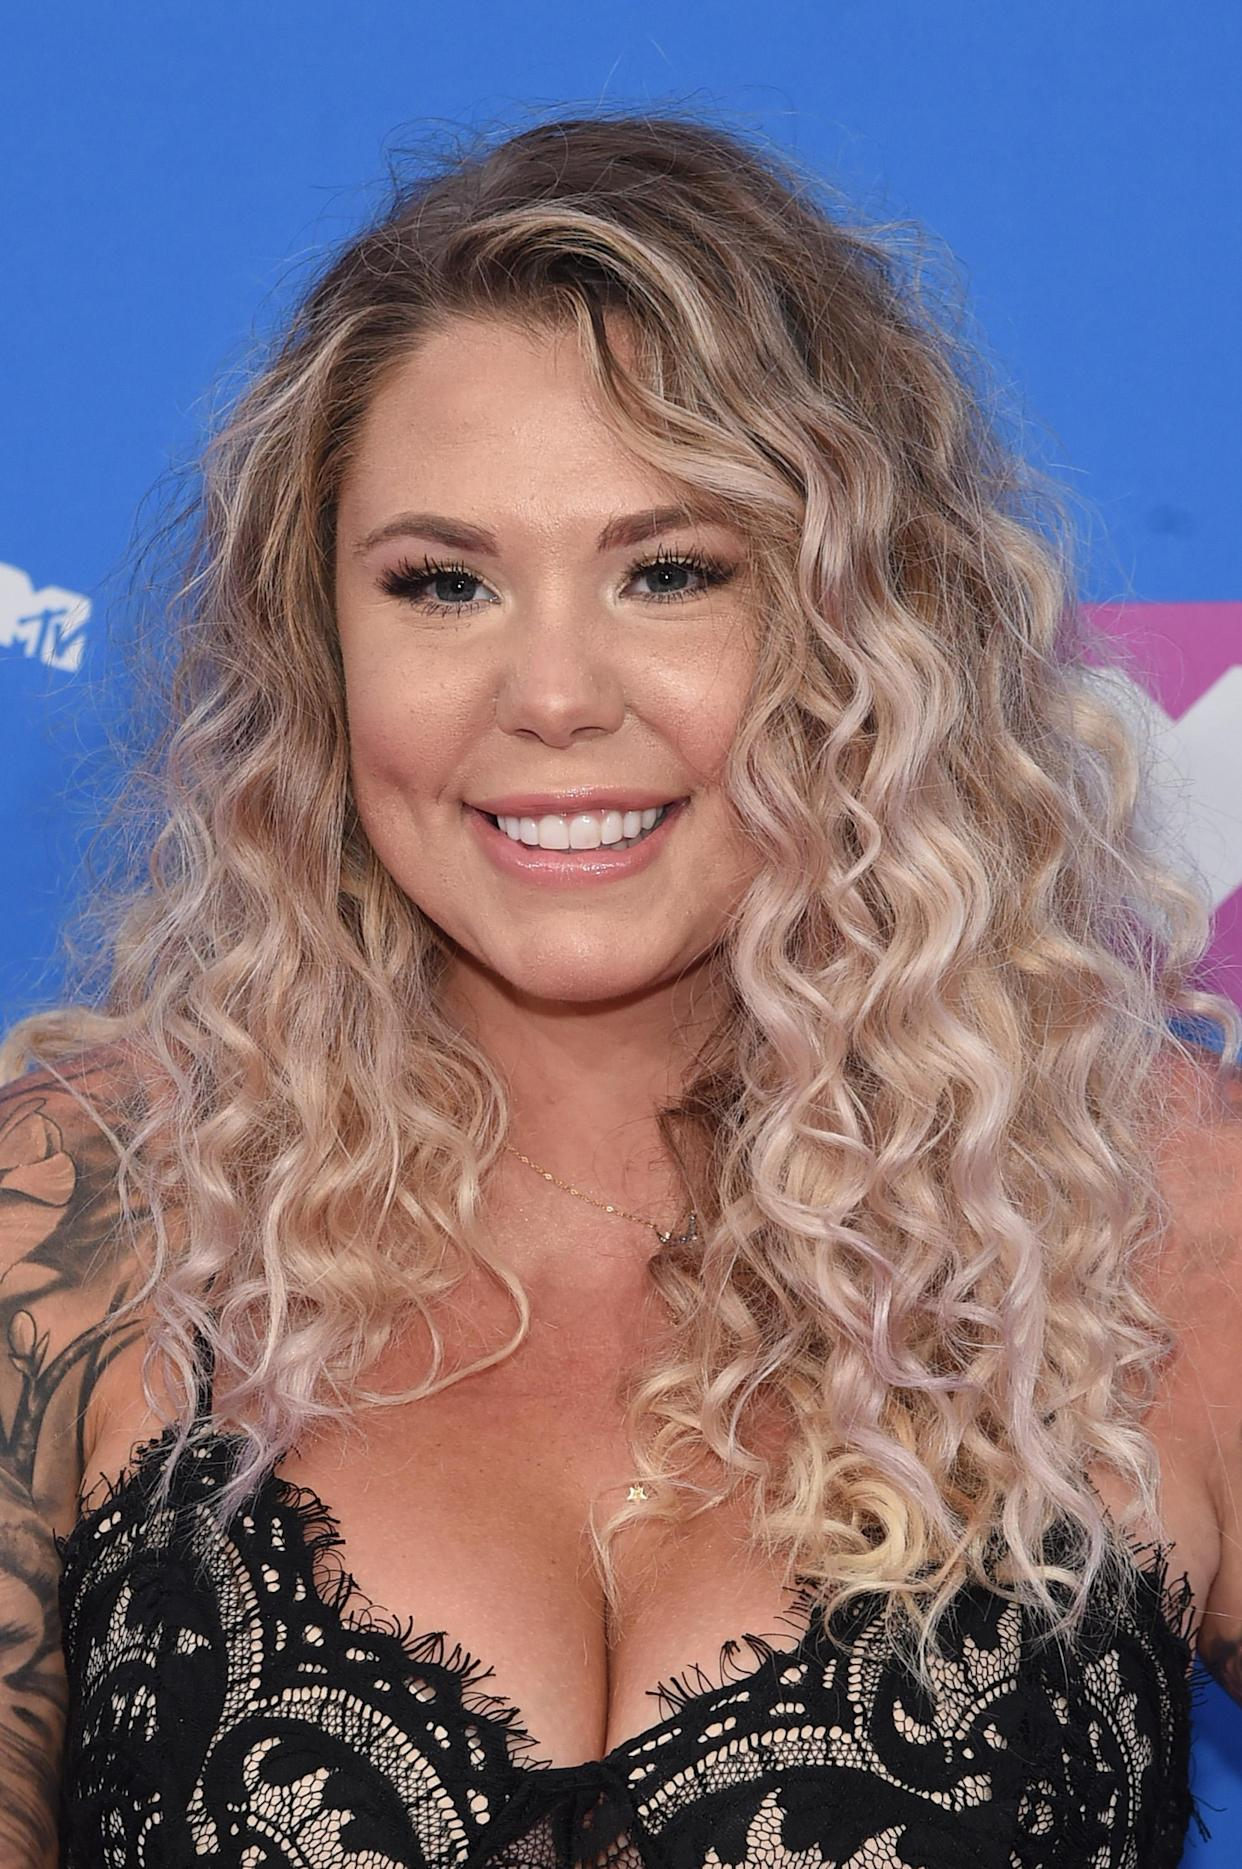 Kailyn Lowry is making fun of fellow <i>Teen Mom</i>&nbsp;star Jenelle Evans. (Photo: Jamie McCarthy/Getty Images)